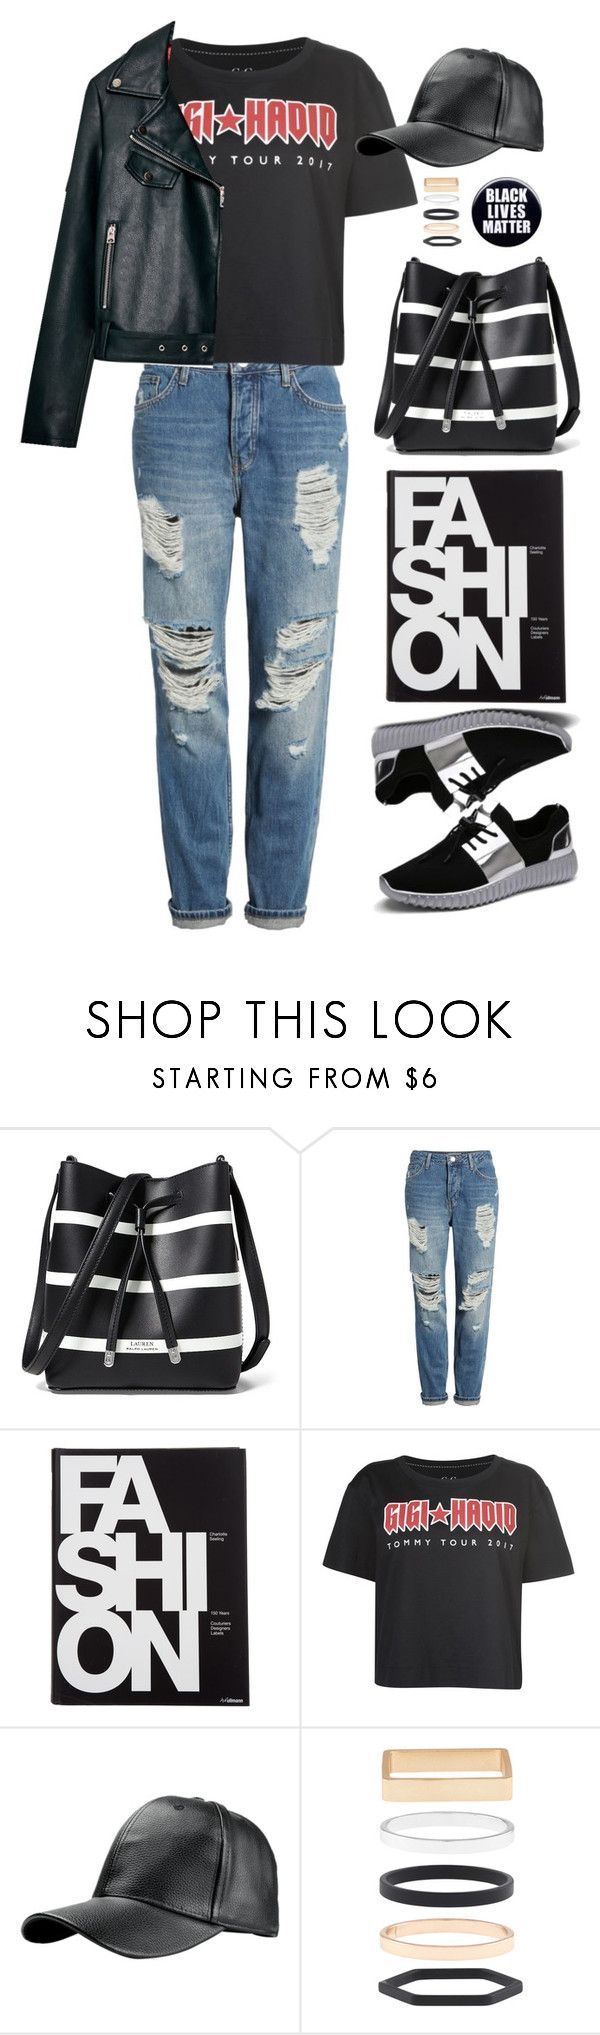 """""""Tshirt"""" by altrisa-mulla ❤ liked on Polyvore featuring Lauren Ralph Lauren, Topshop, Tommy Hilfiger, Accessorize and MyFaveTshirt"""